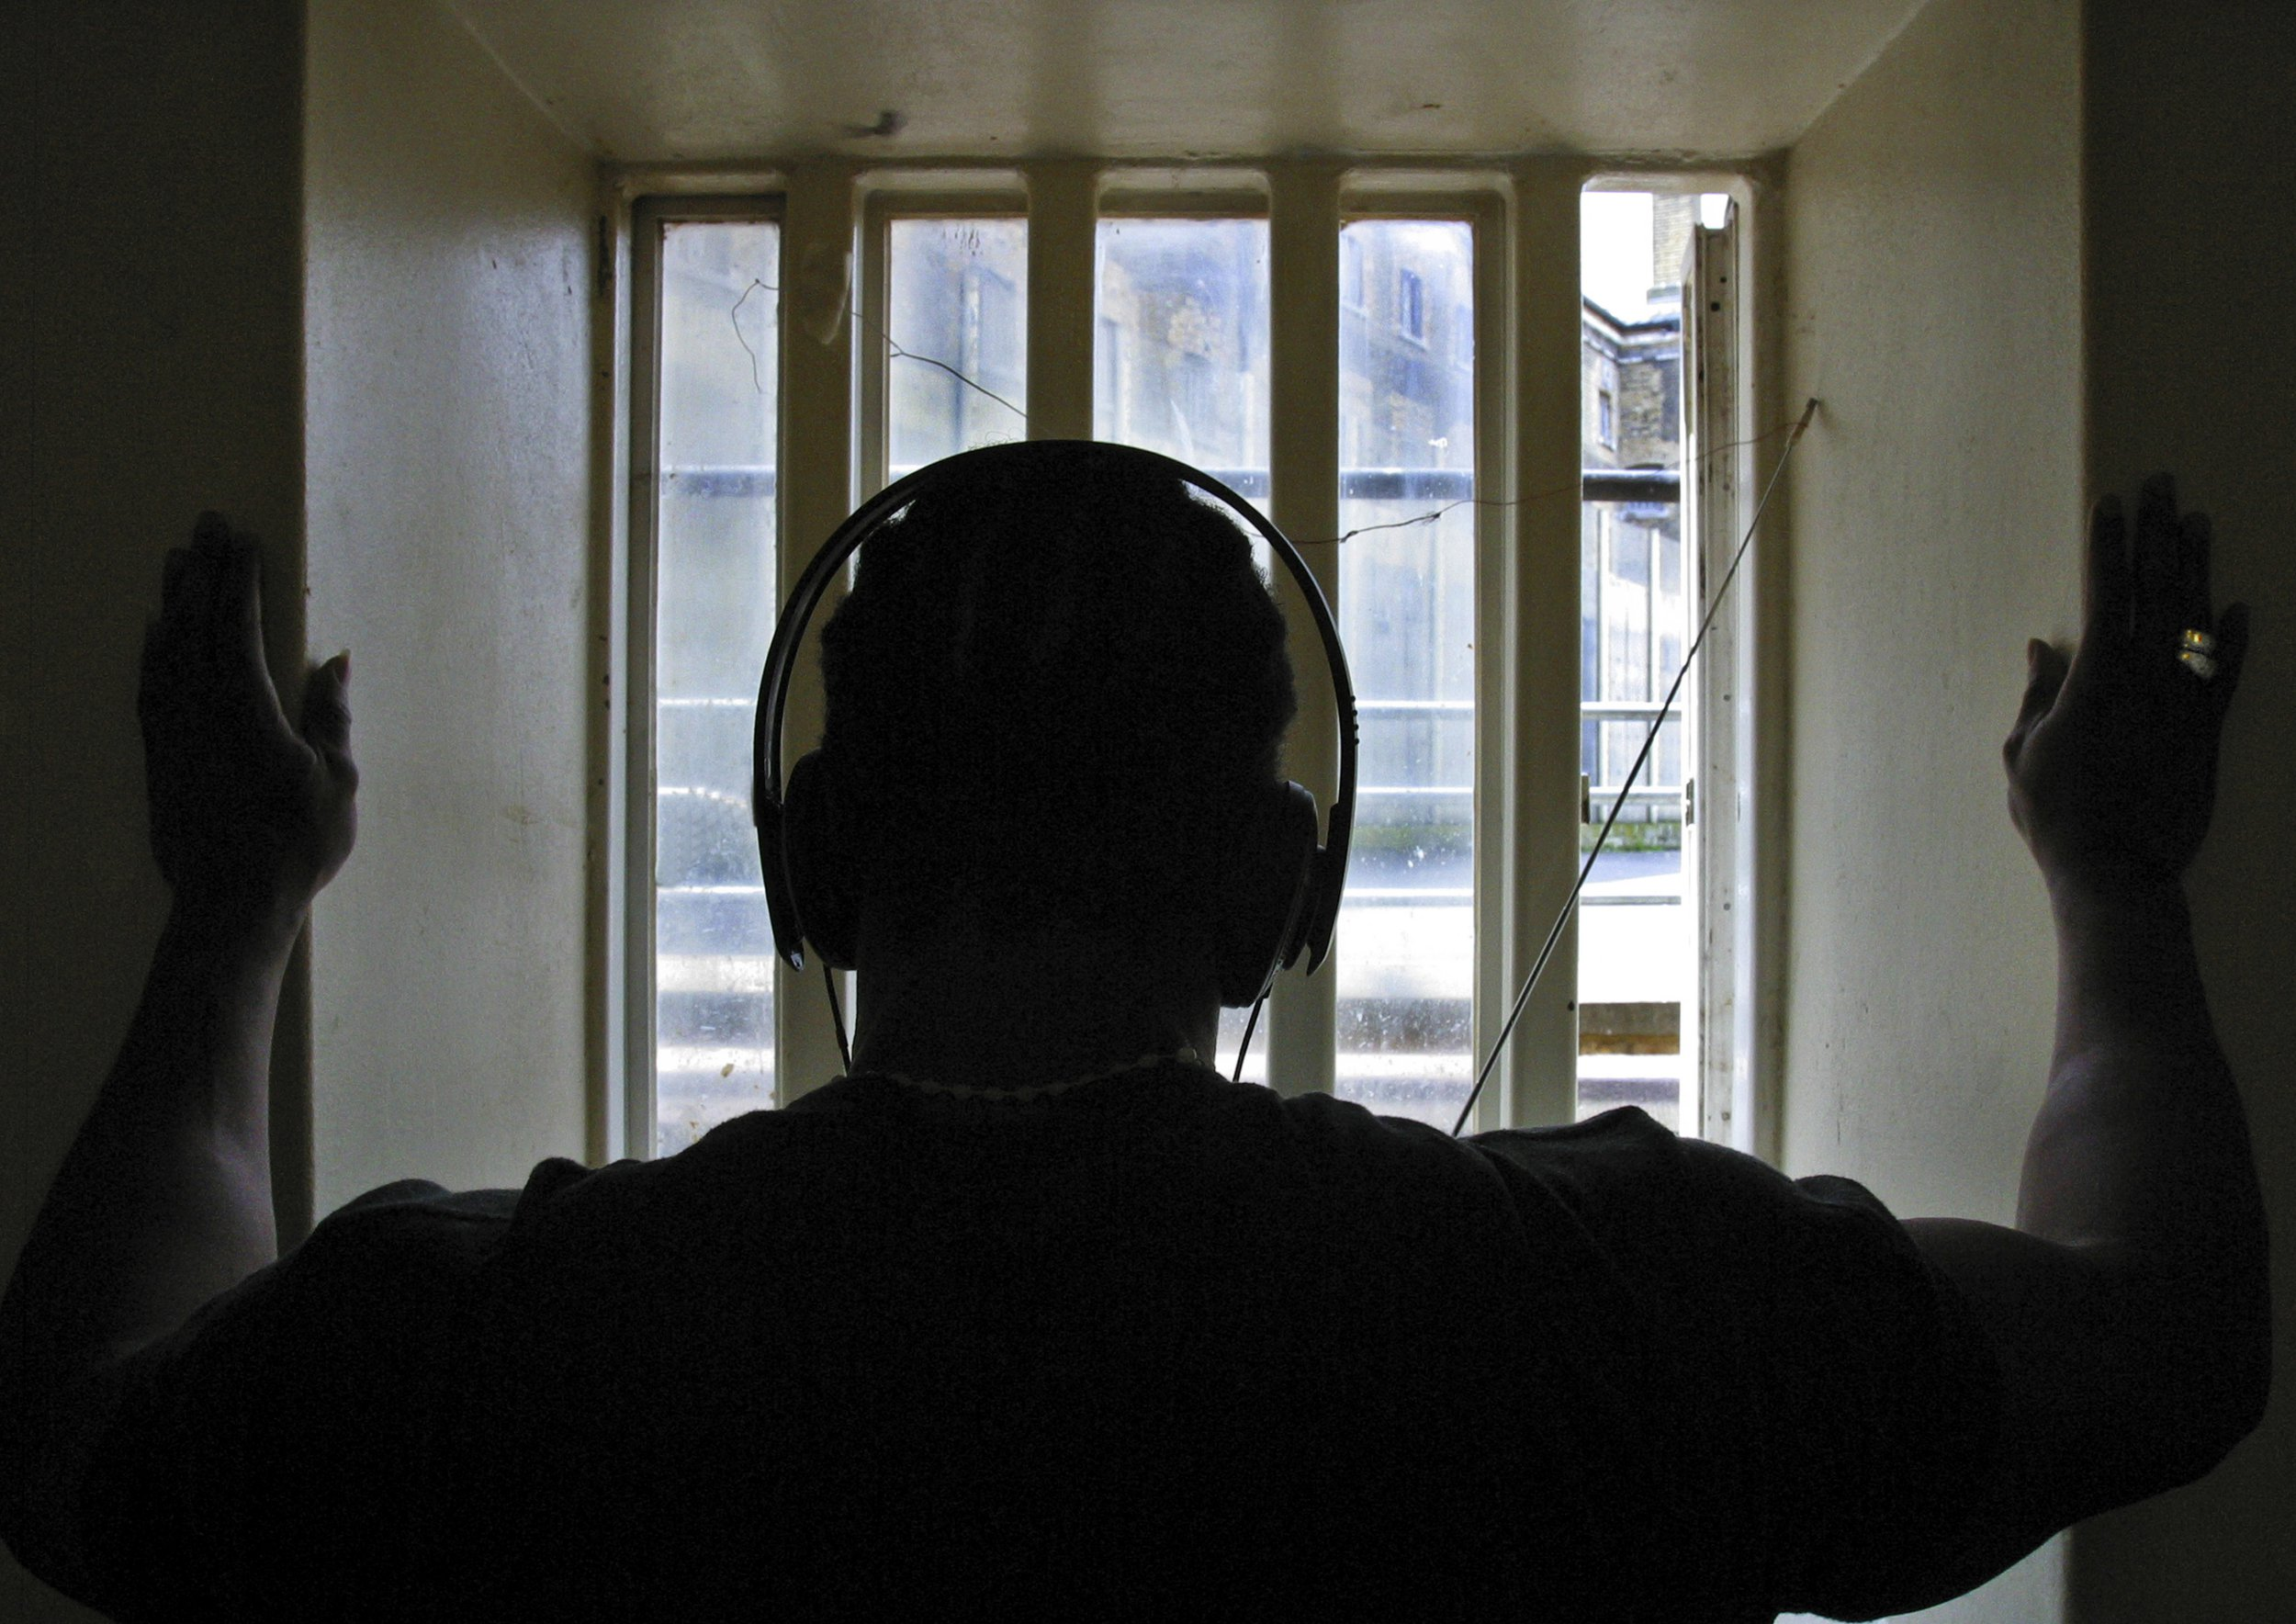 I was in prison for 12 years – I know how much good would come from removing prison window bars